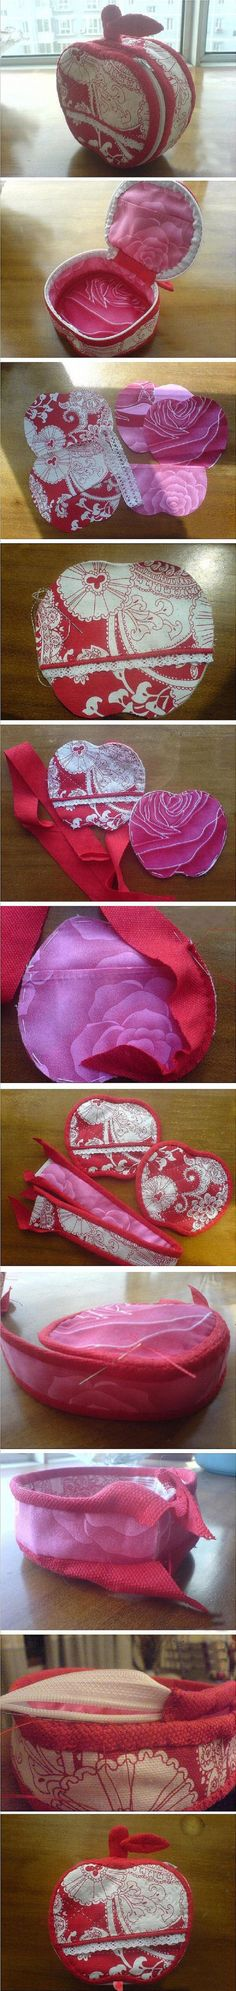 DIY Apple Sewing Box